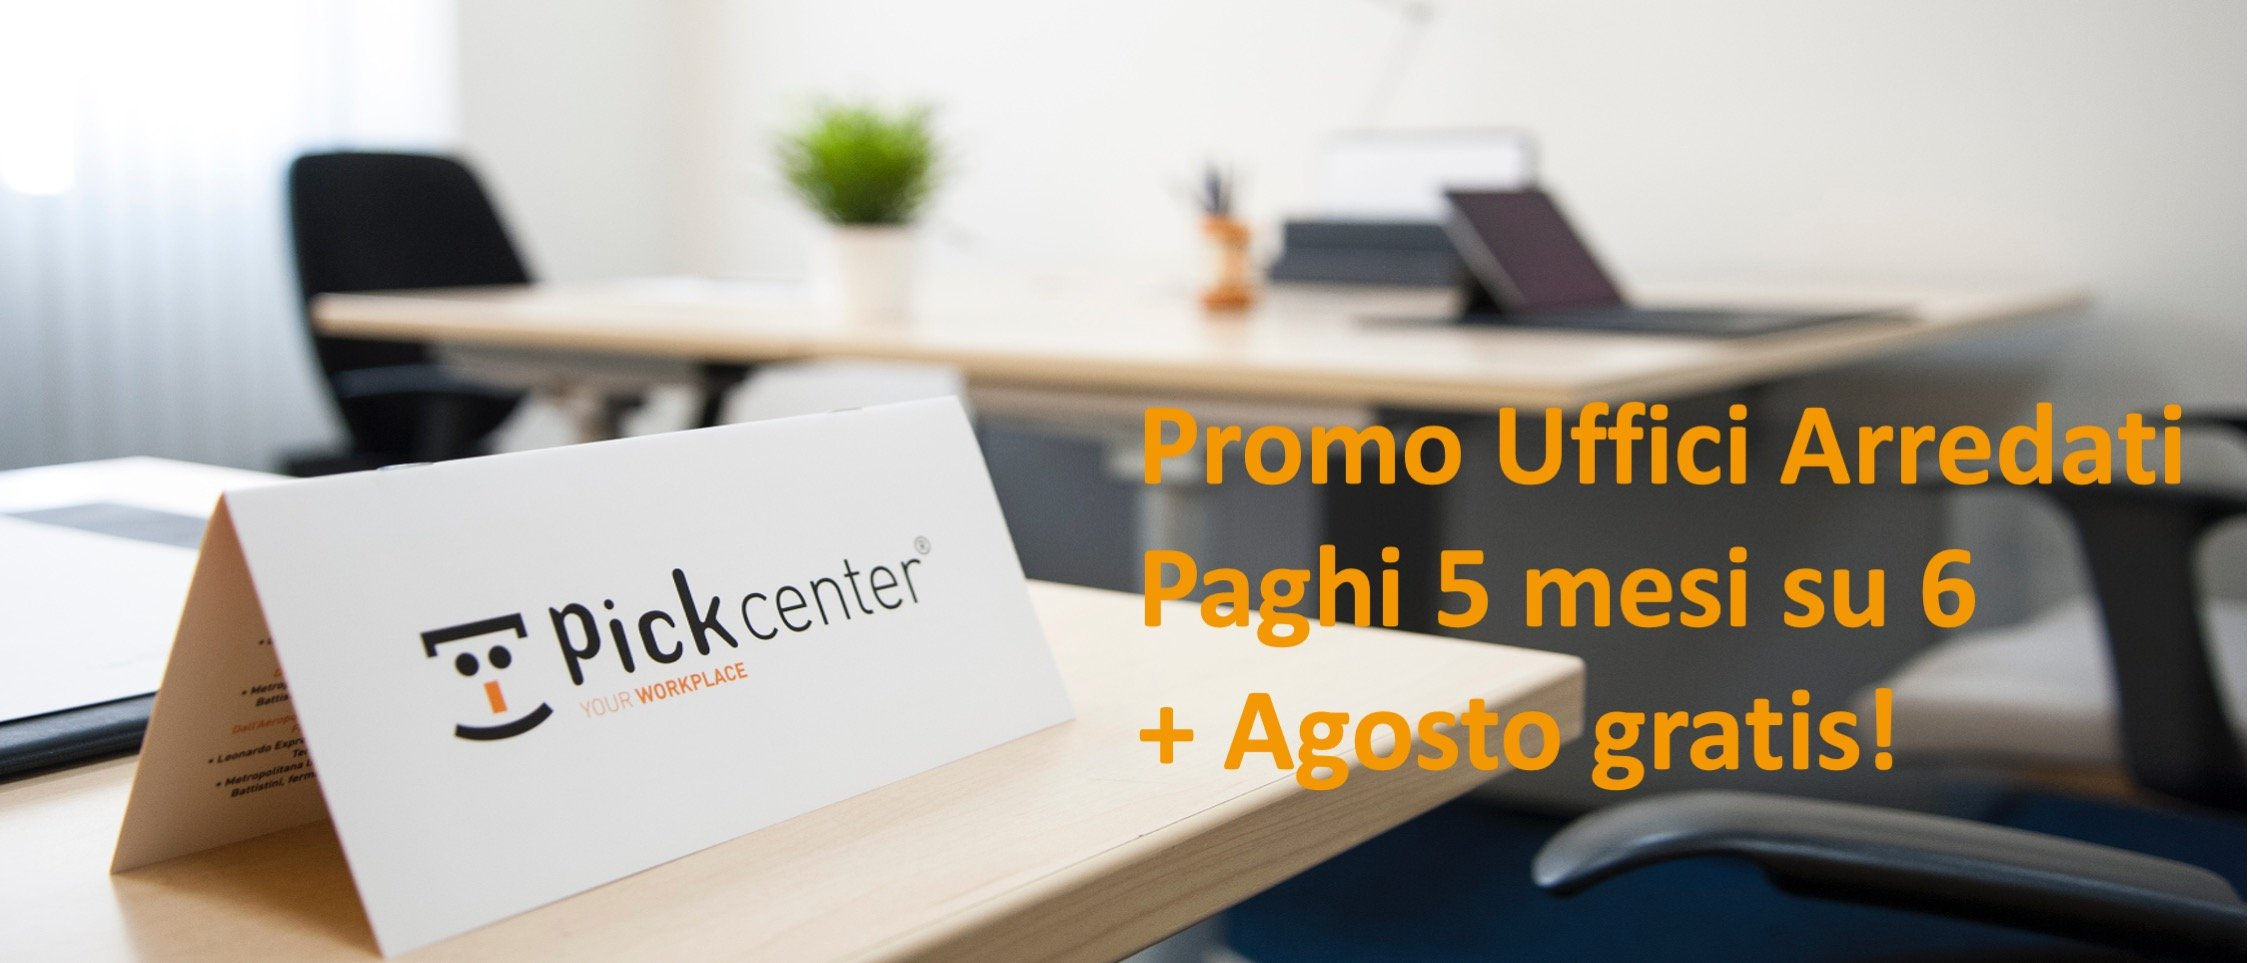 Uffici arredati in promo imperdibile Pick Center